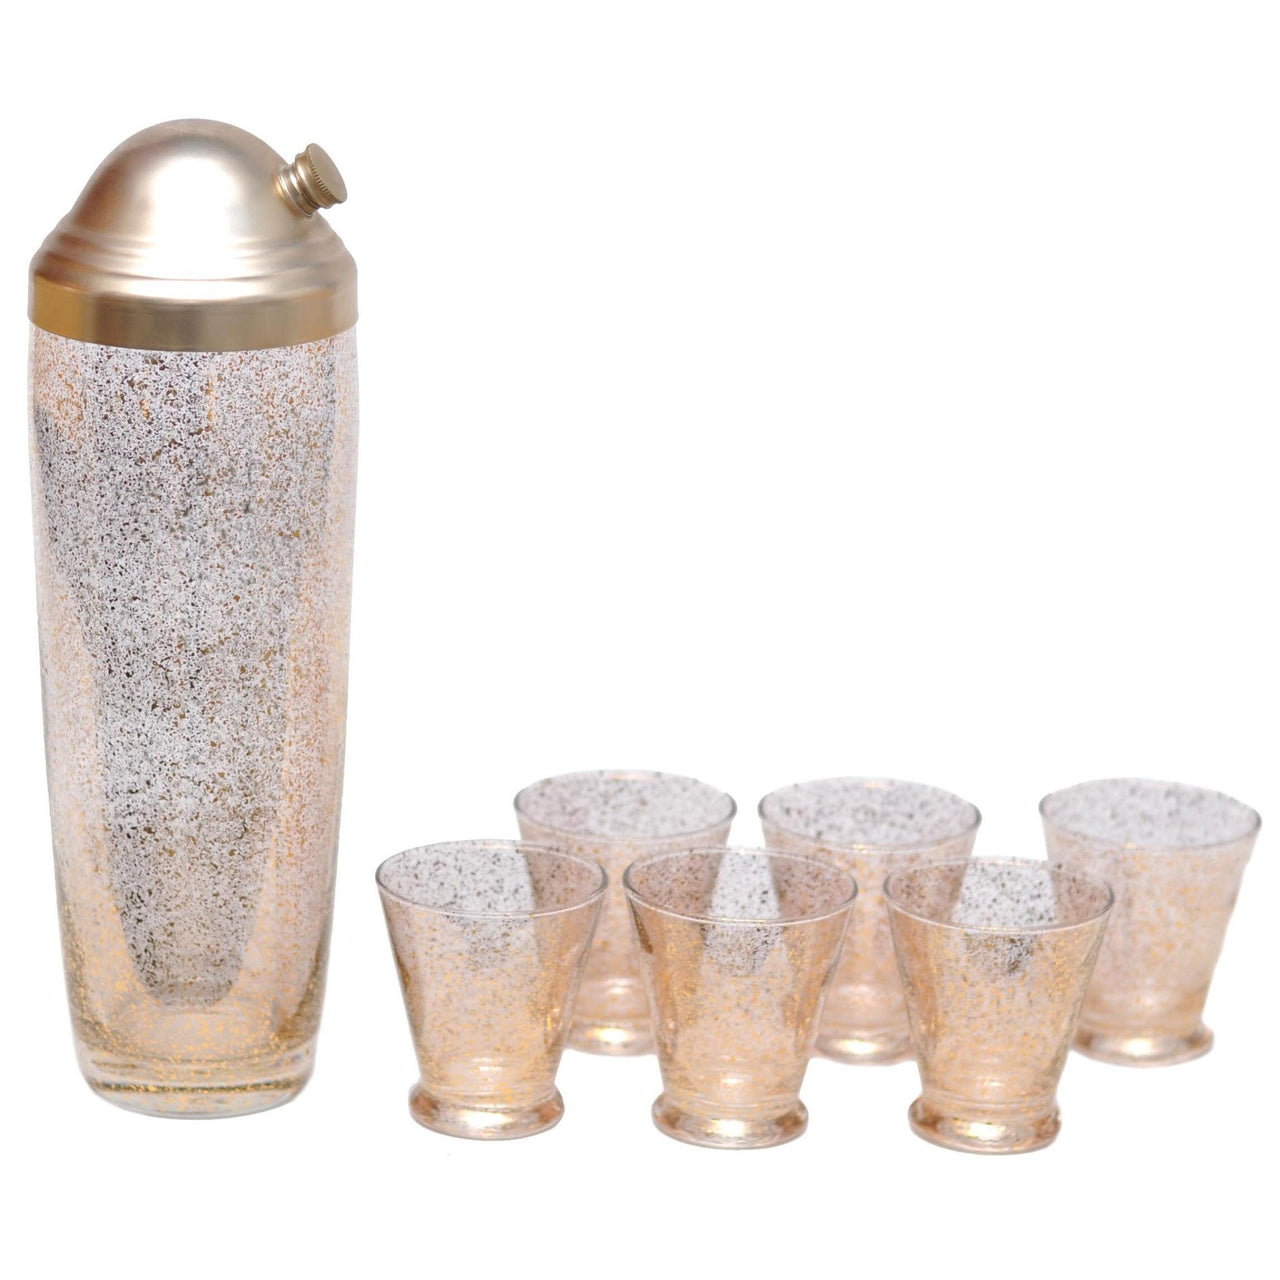 Vintage Gold Shimmer Cocktail Shaker Set | The Hour Shop